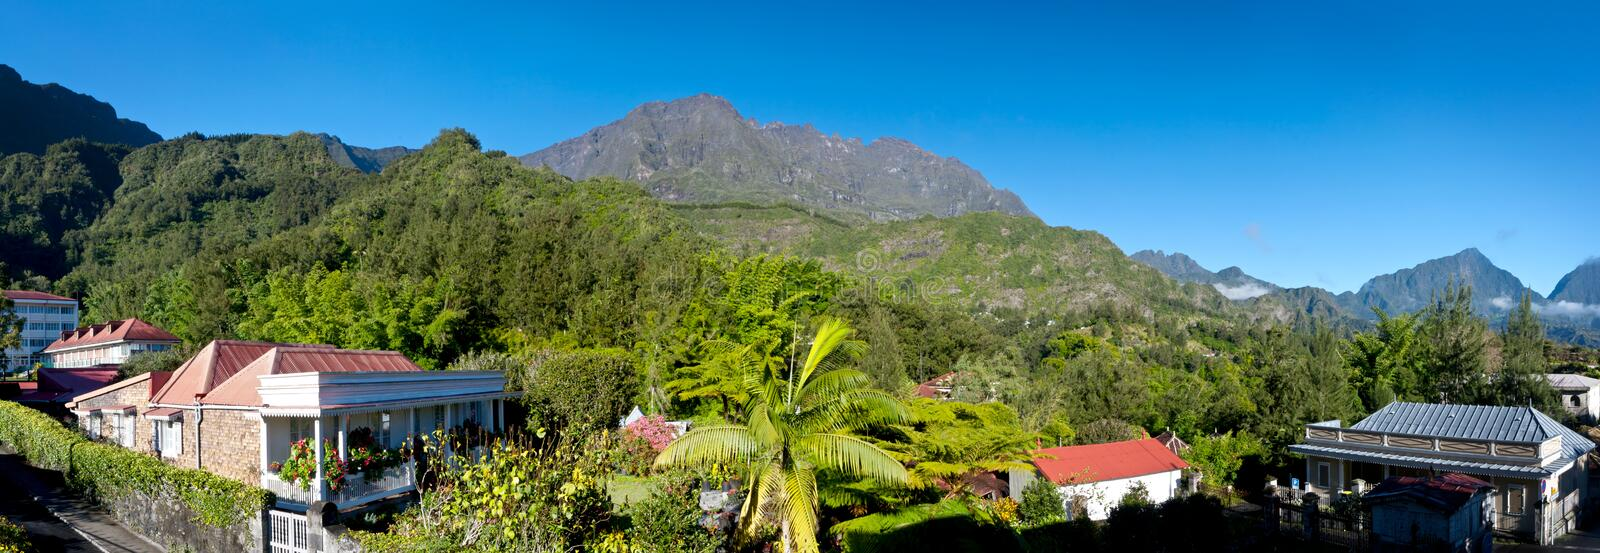 Download Reunion Island mountains stock image. Image of town, panorama - 20867755